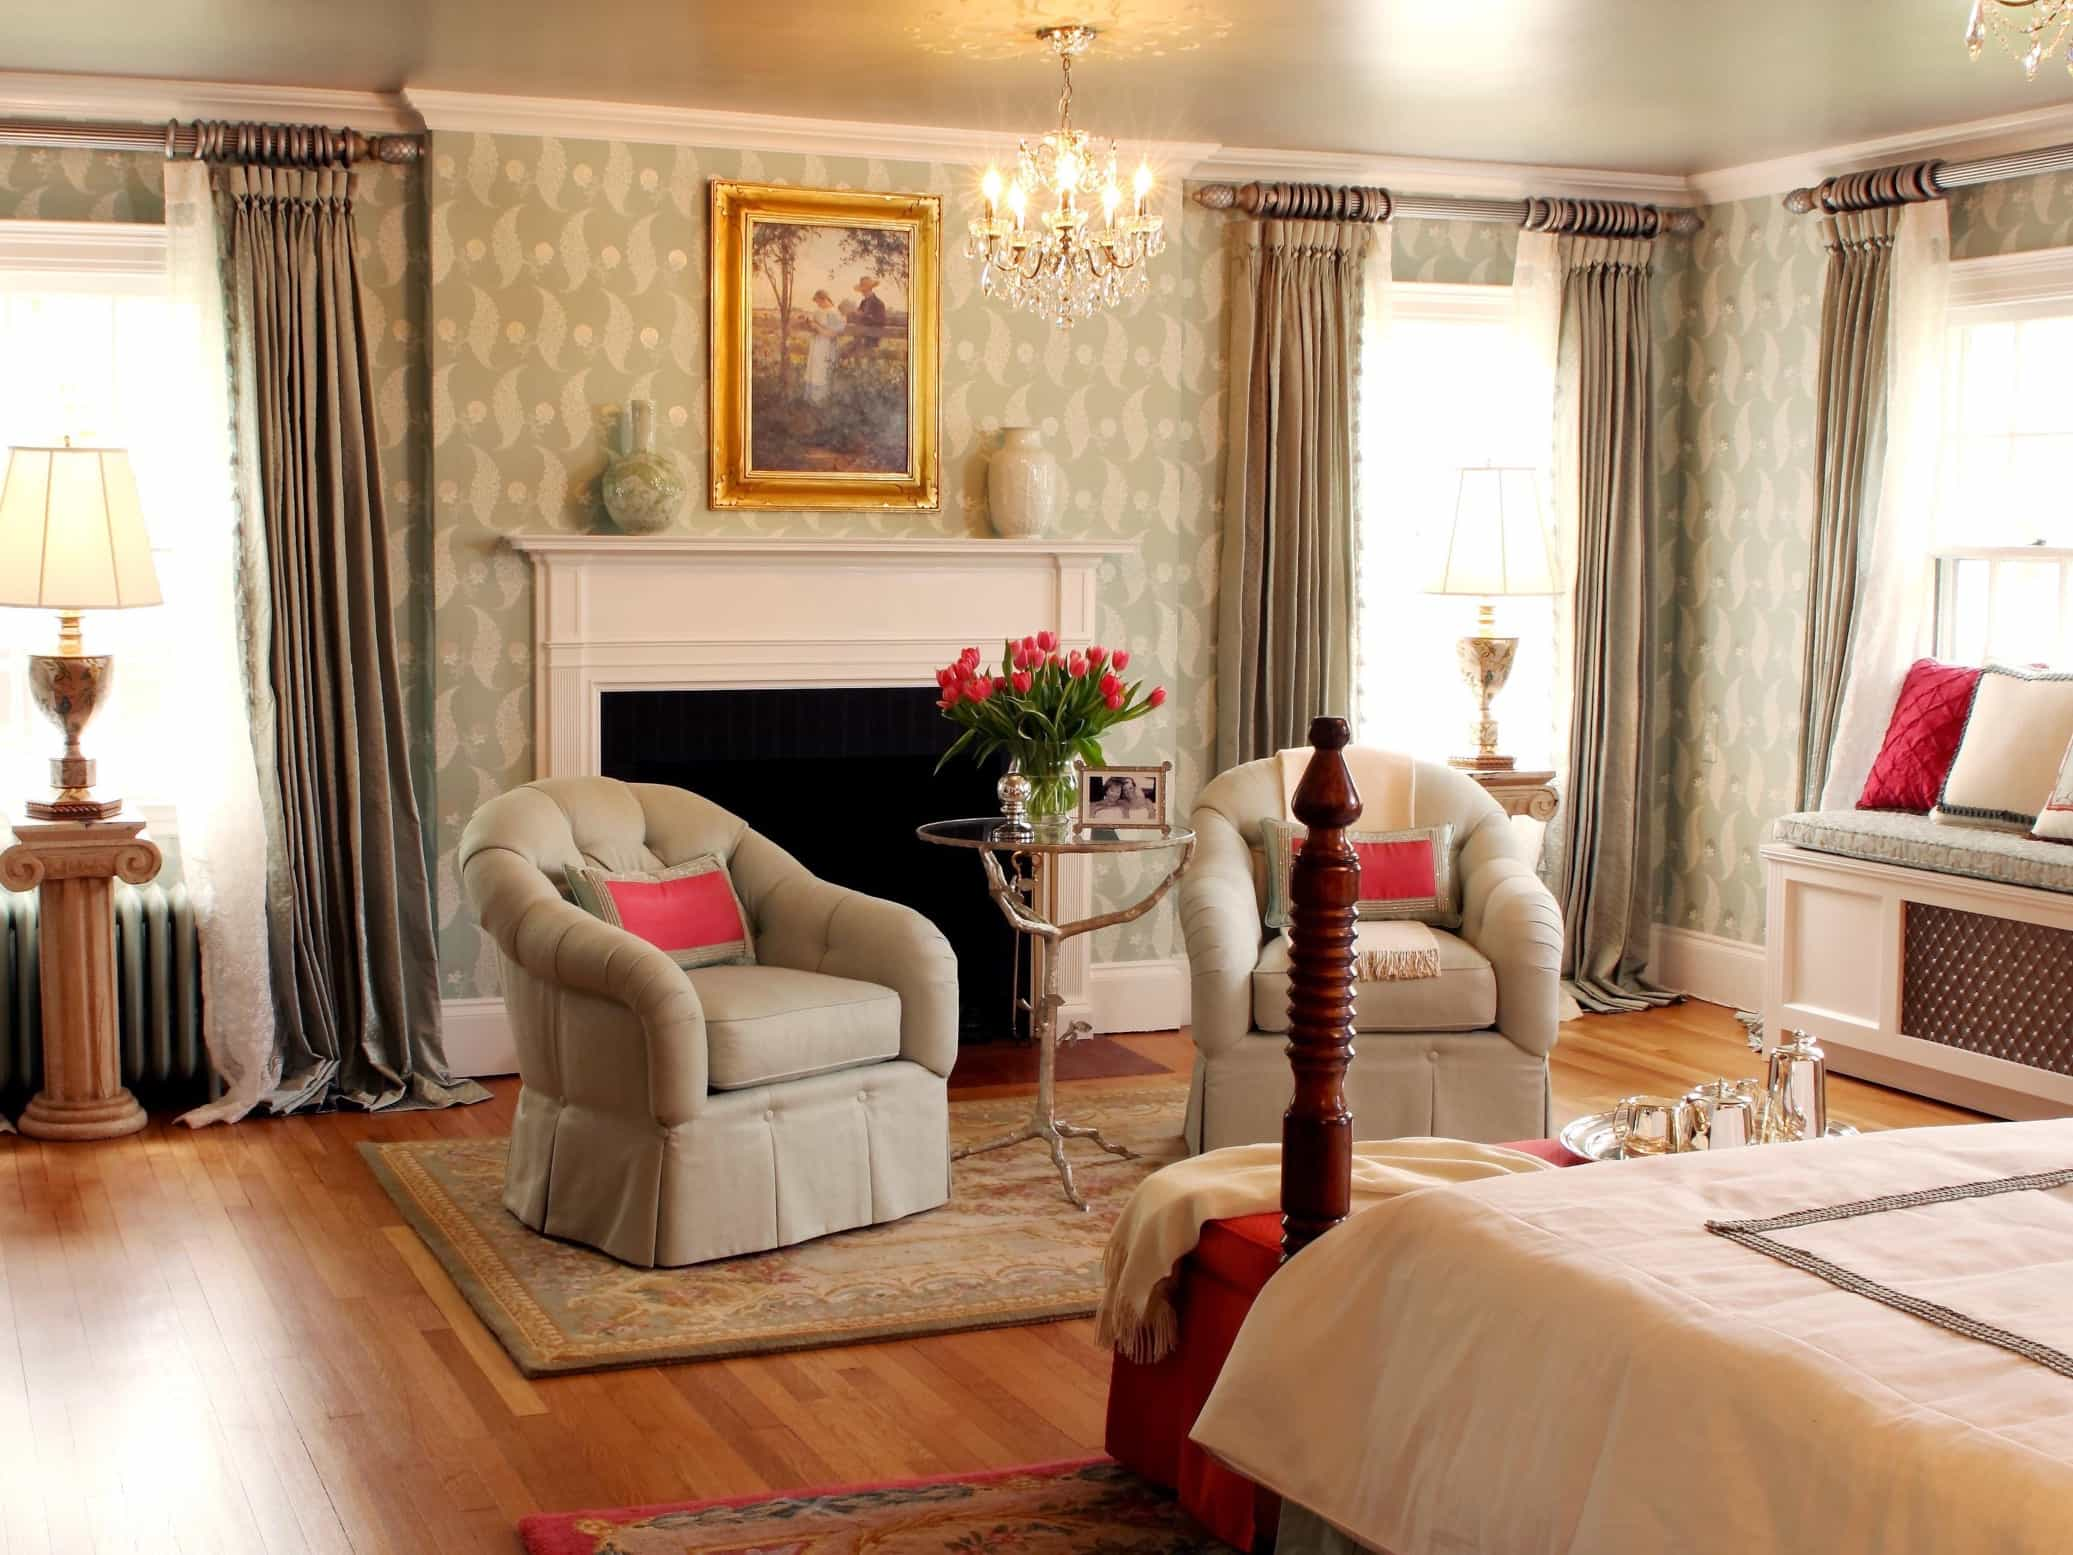 Featured Image of Elegance Green Colonial Bedroom With Fireplace And Sitting Area